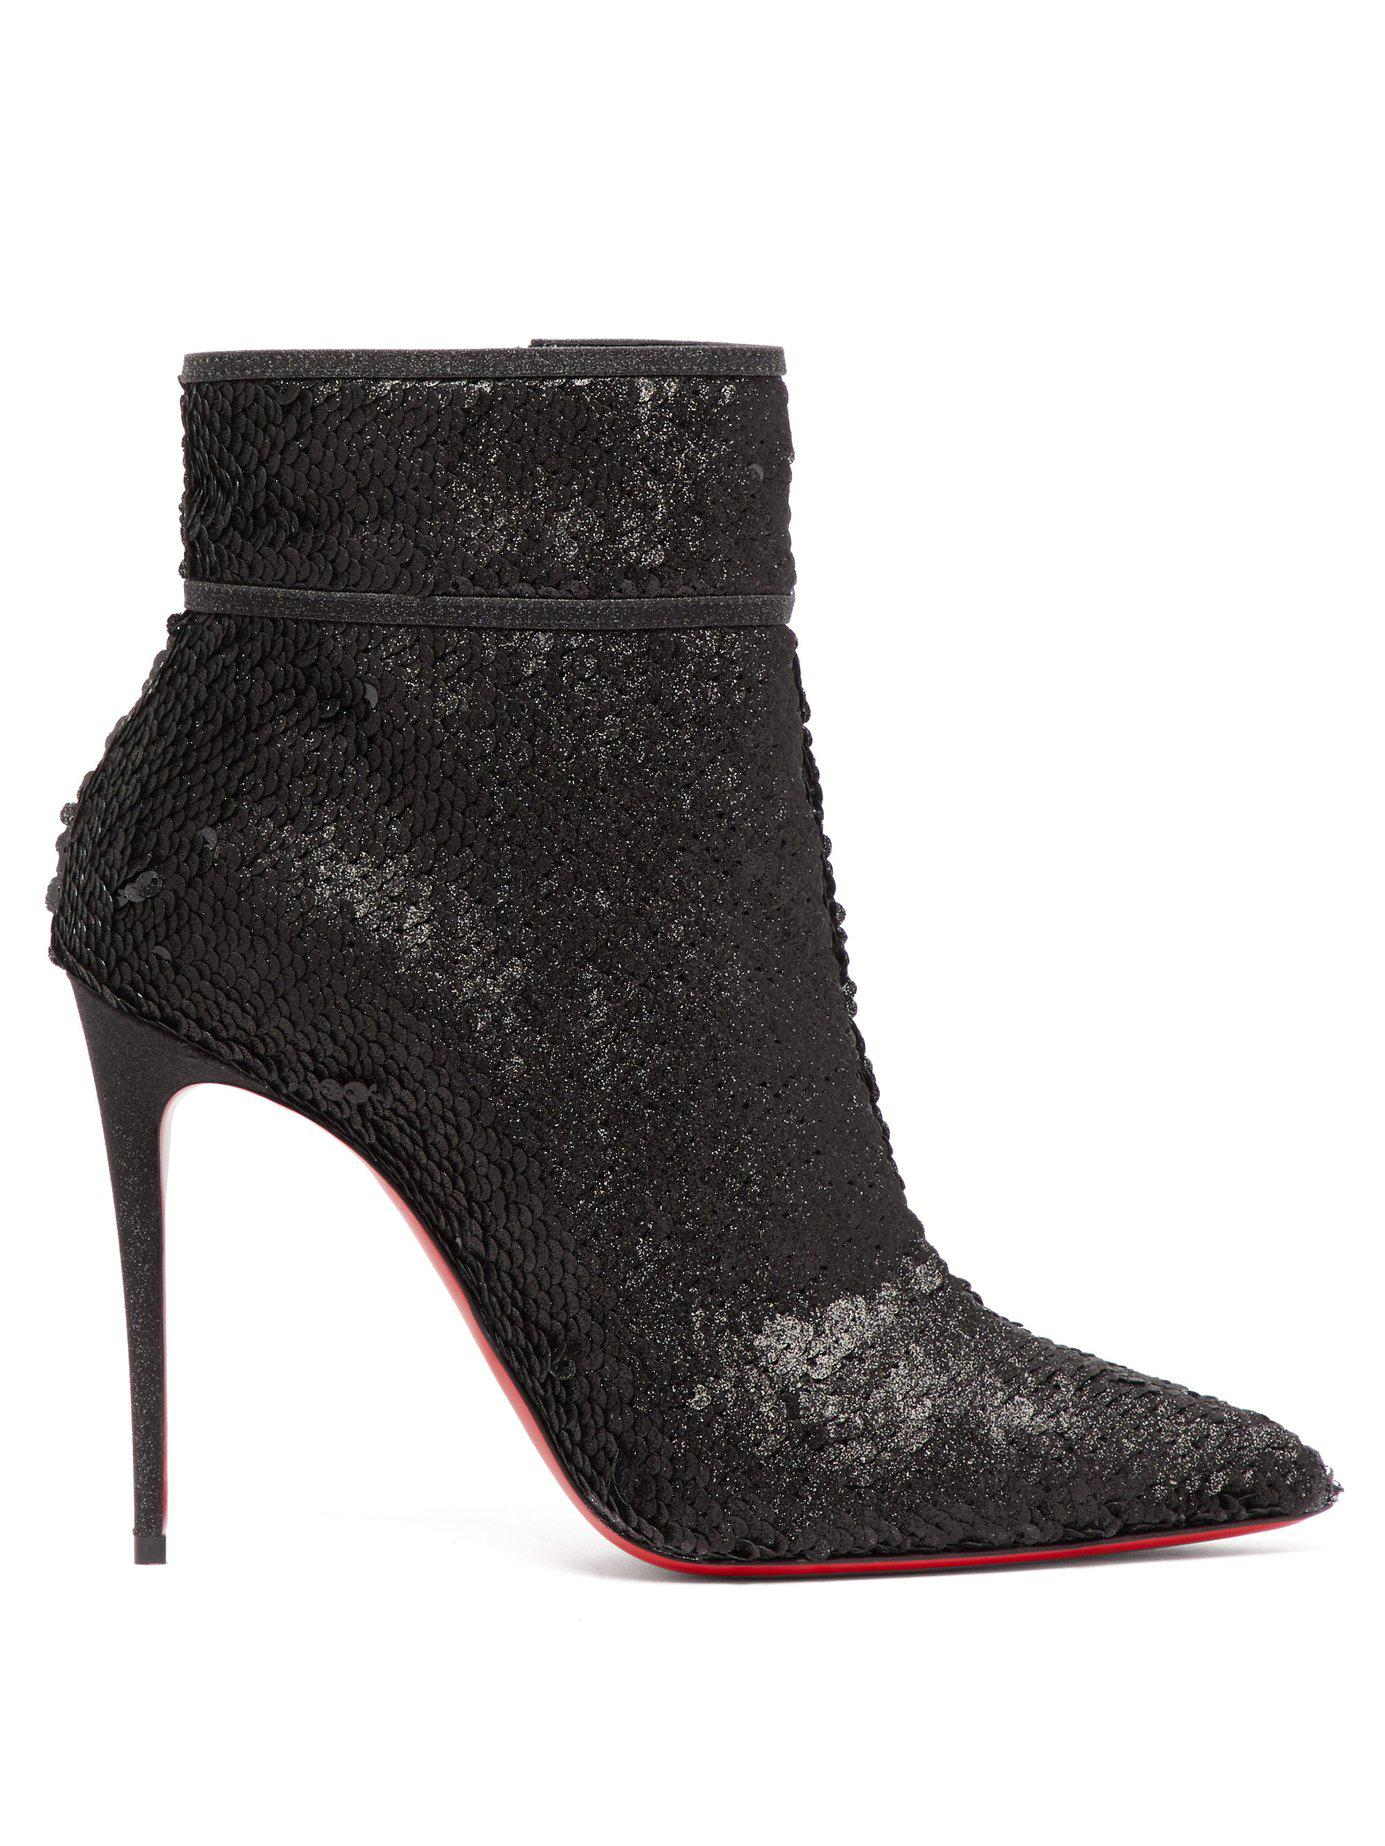 8d08be945c09 Lyst - Christian Louboutin Moulakate 100 Sequin Ankle Boots in Black